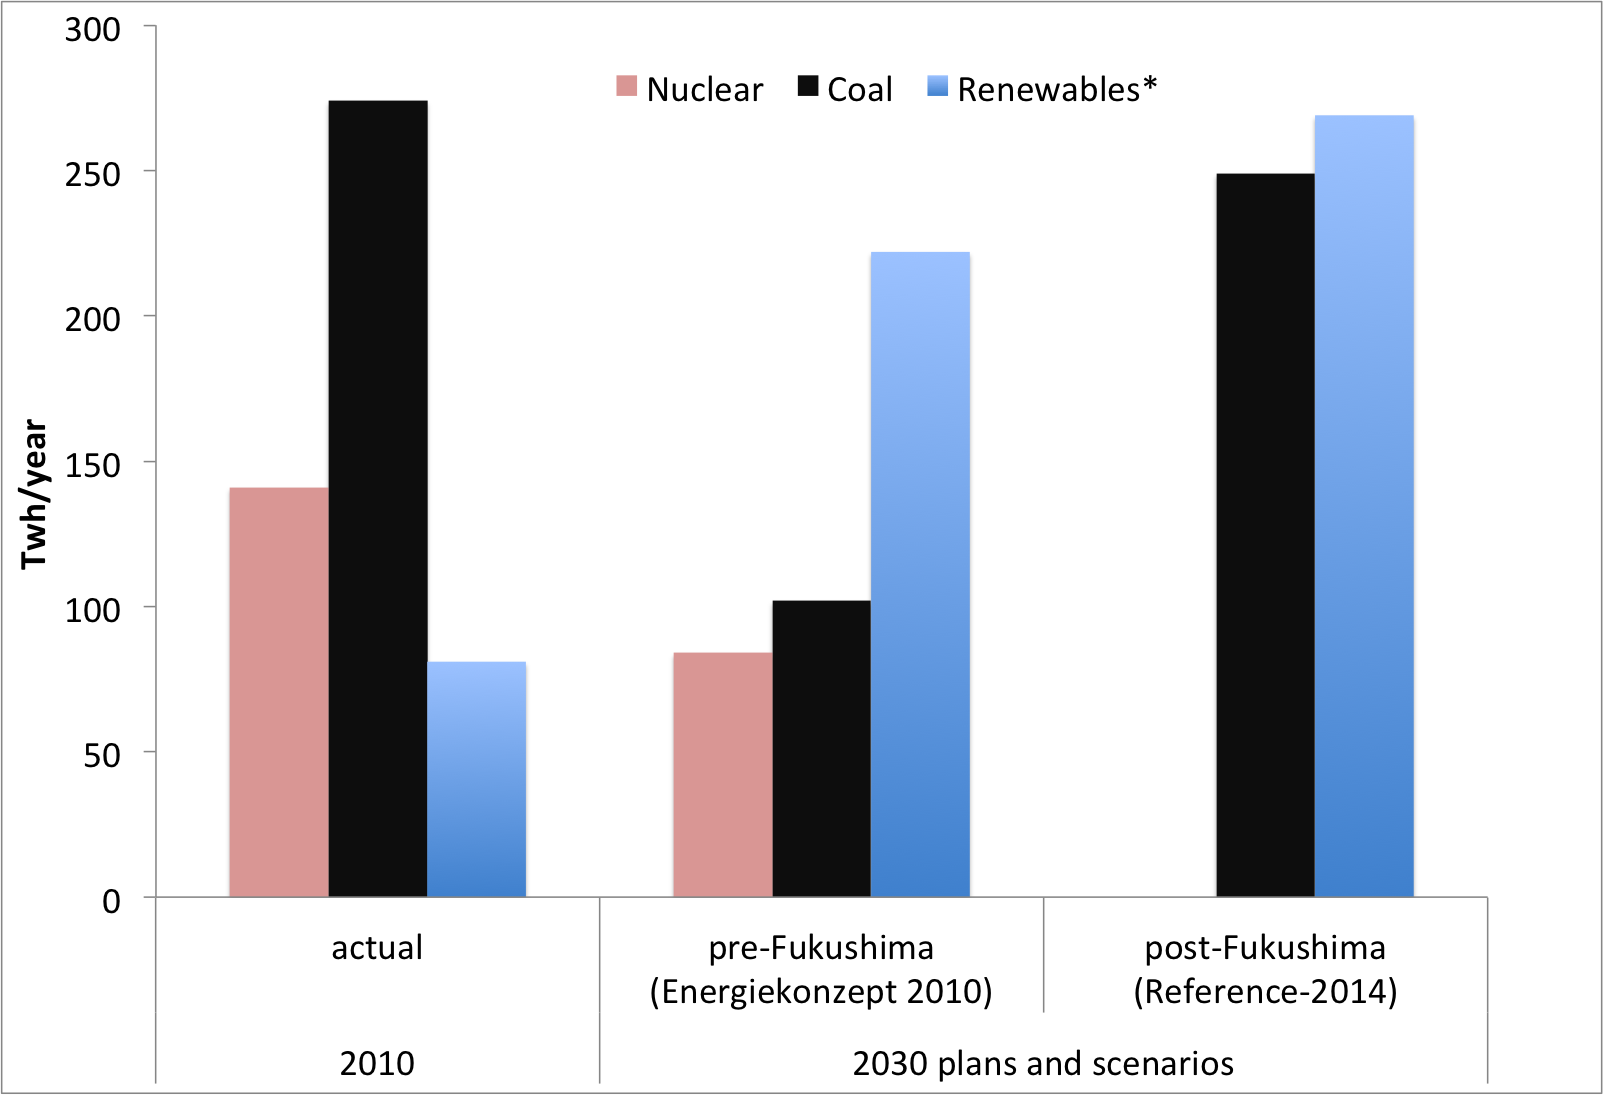 Nuclear, coal and renewables (*excluding hydro)in electricity production in Germany.    Sources:  IEA Energy Balances  (for 2010).  Schlesinger et al (2010) , scenario SIIA (for pre-Fukushima); Schlesinger et al (2014)  (for post-Fukushima)